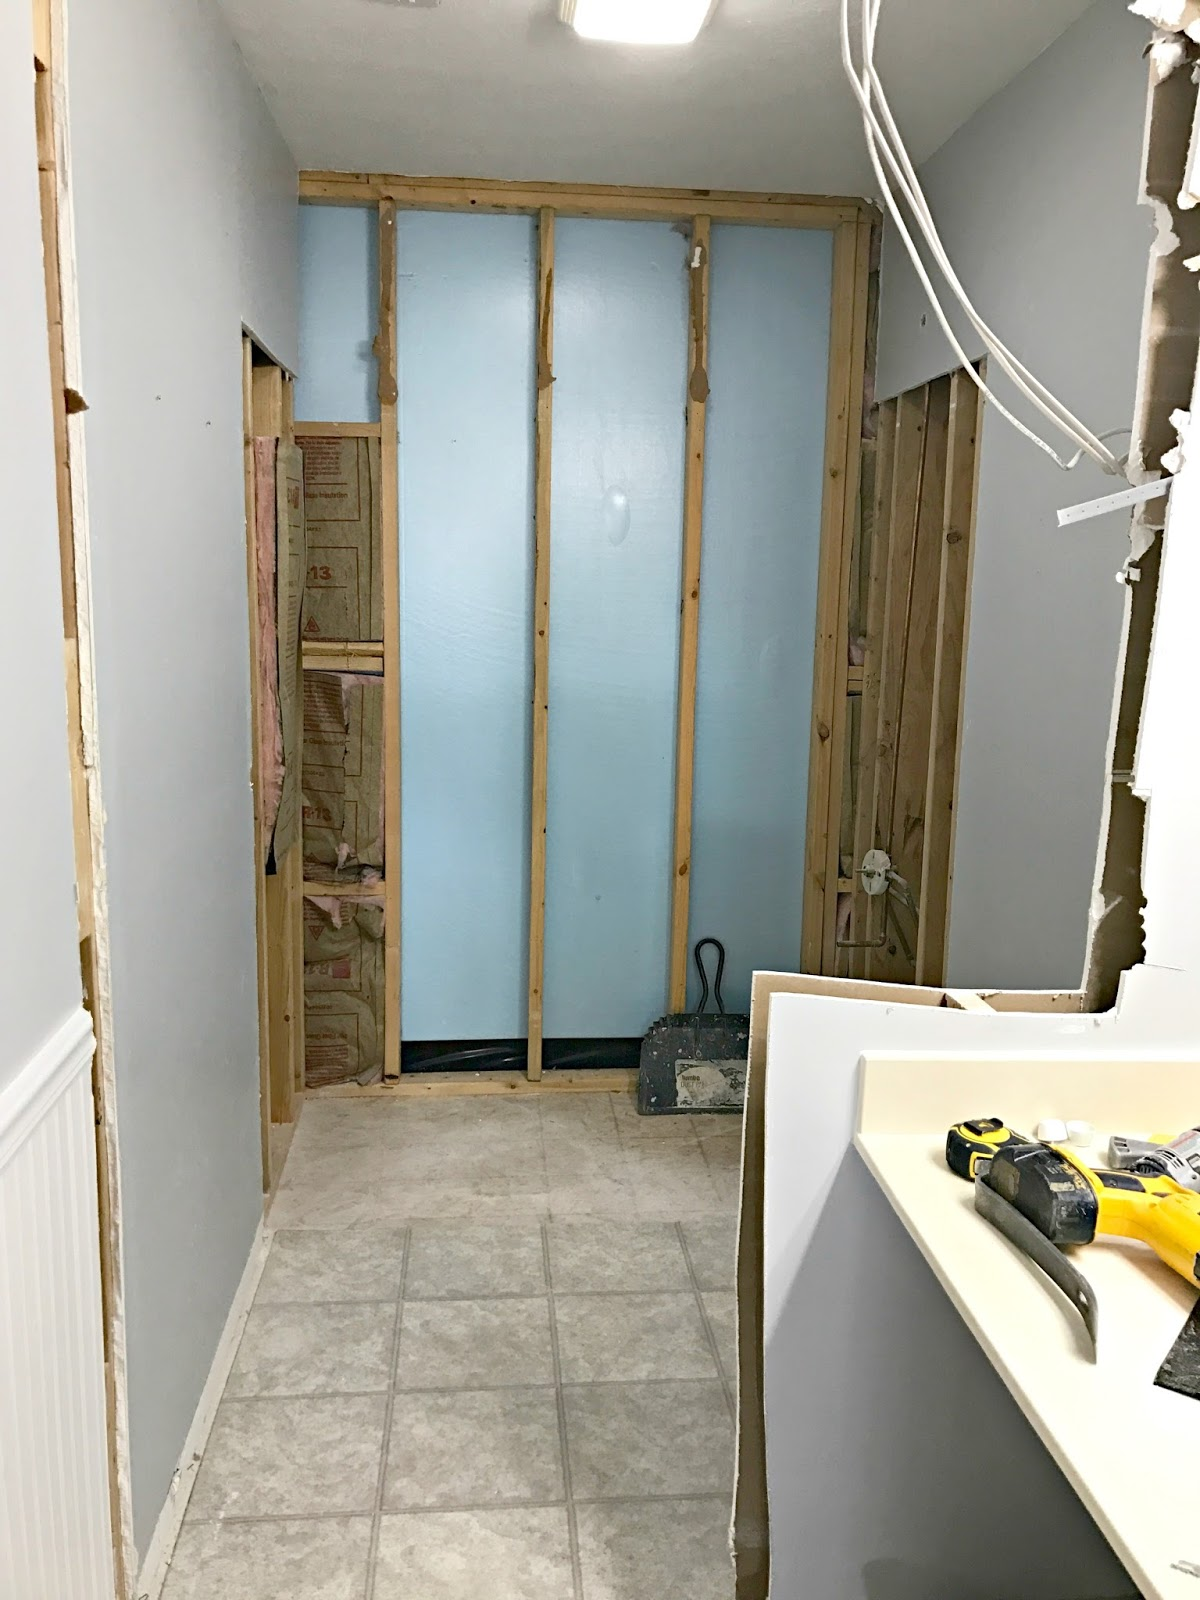 Big Bathroom Renovation Progress From Thrifty Decor Chick